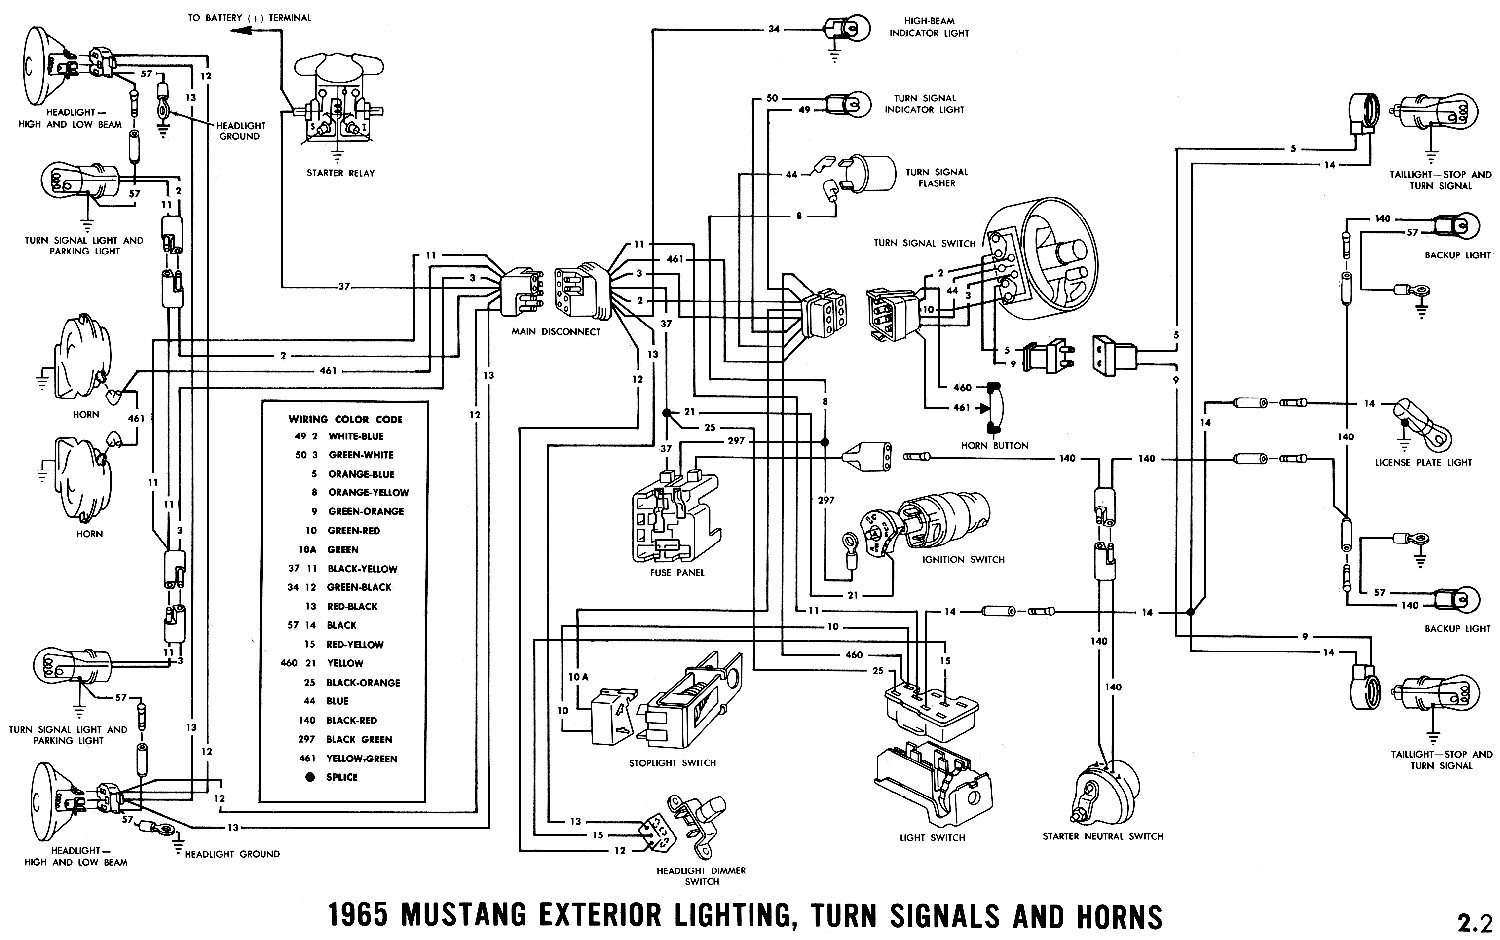 1966 Gm Ignition Switch Wiring Diagram Library Chevy 1965 Mustang Diagrams Average Joe Restoration Rh Averagejoerestoration Com Schematiceignicionrealy